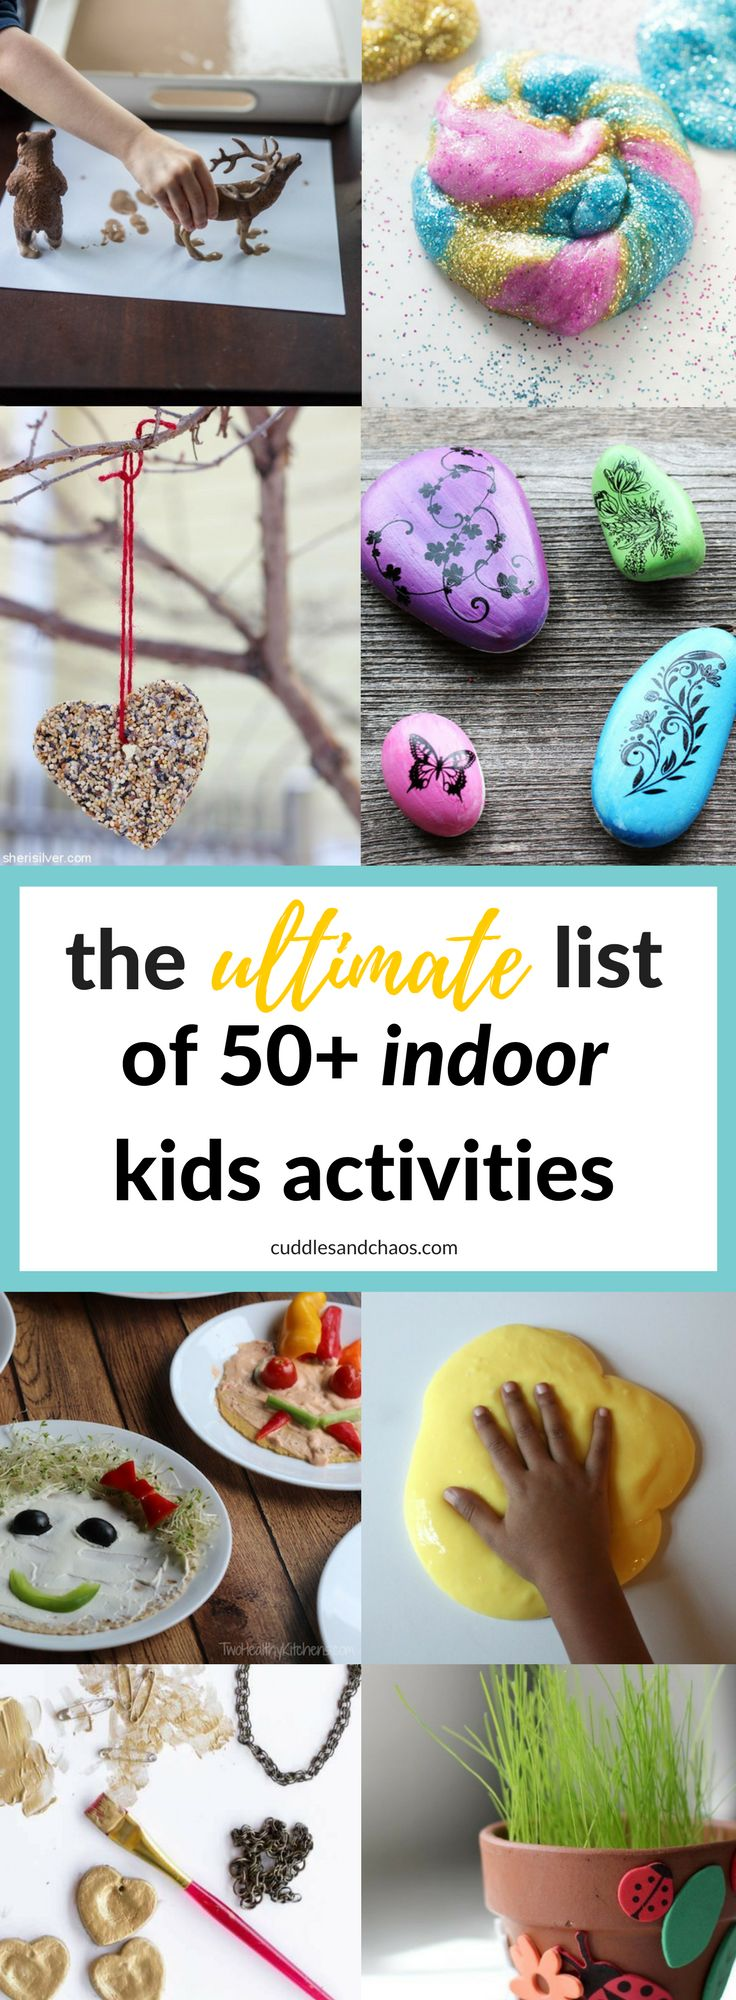 the ultimate list of 50+ indoor kids activities - #kidscrafts #kidsdiy #kidsfun #campmom